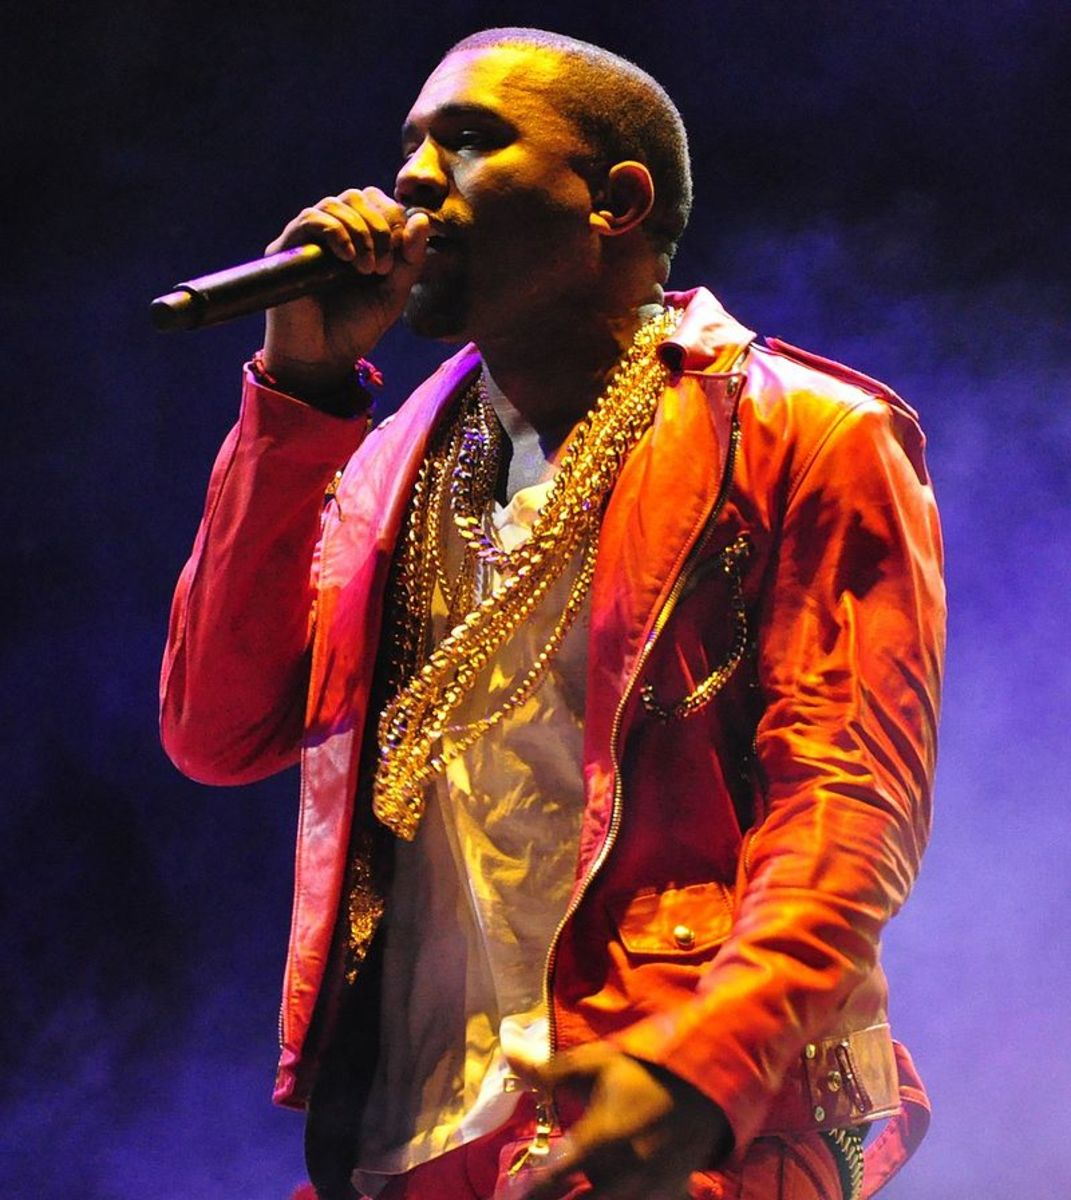 Kanye West performing at Lollapalooza on April 3, 2011 in Santiago, Chile.